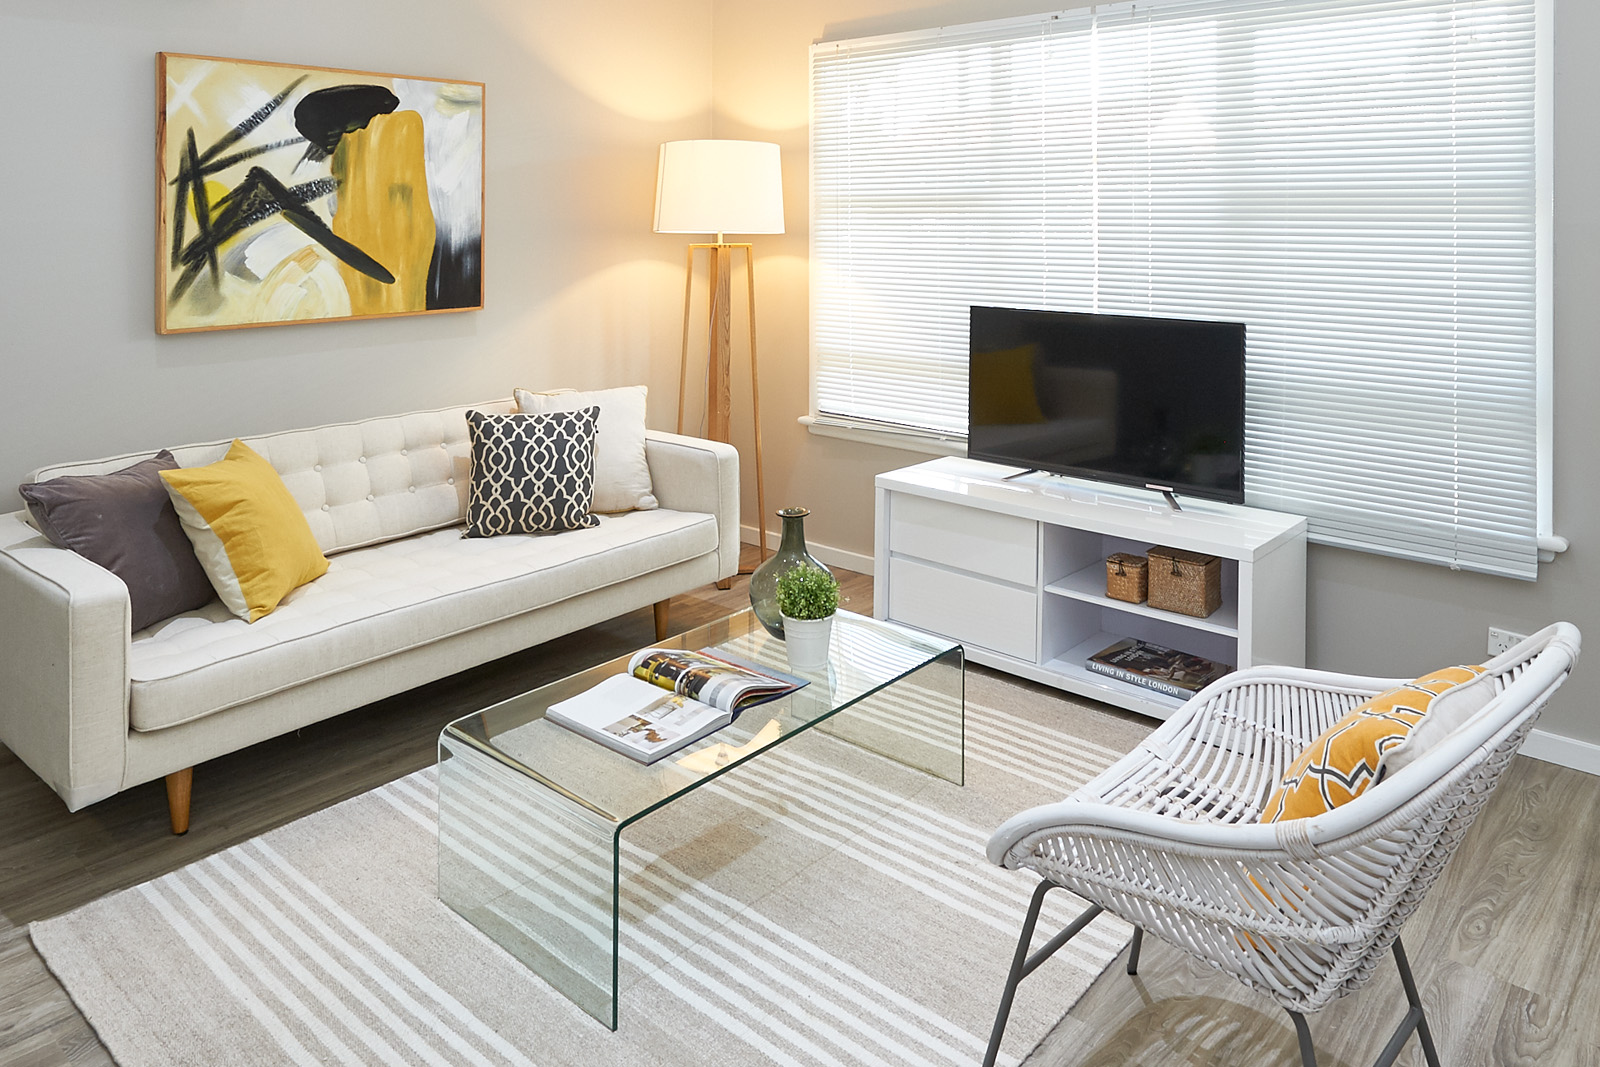 Cherie barber renovating for profit 10 rules styling for sale kingswood